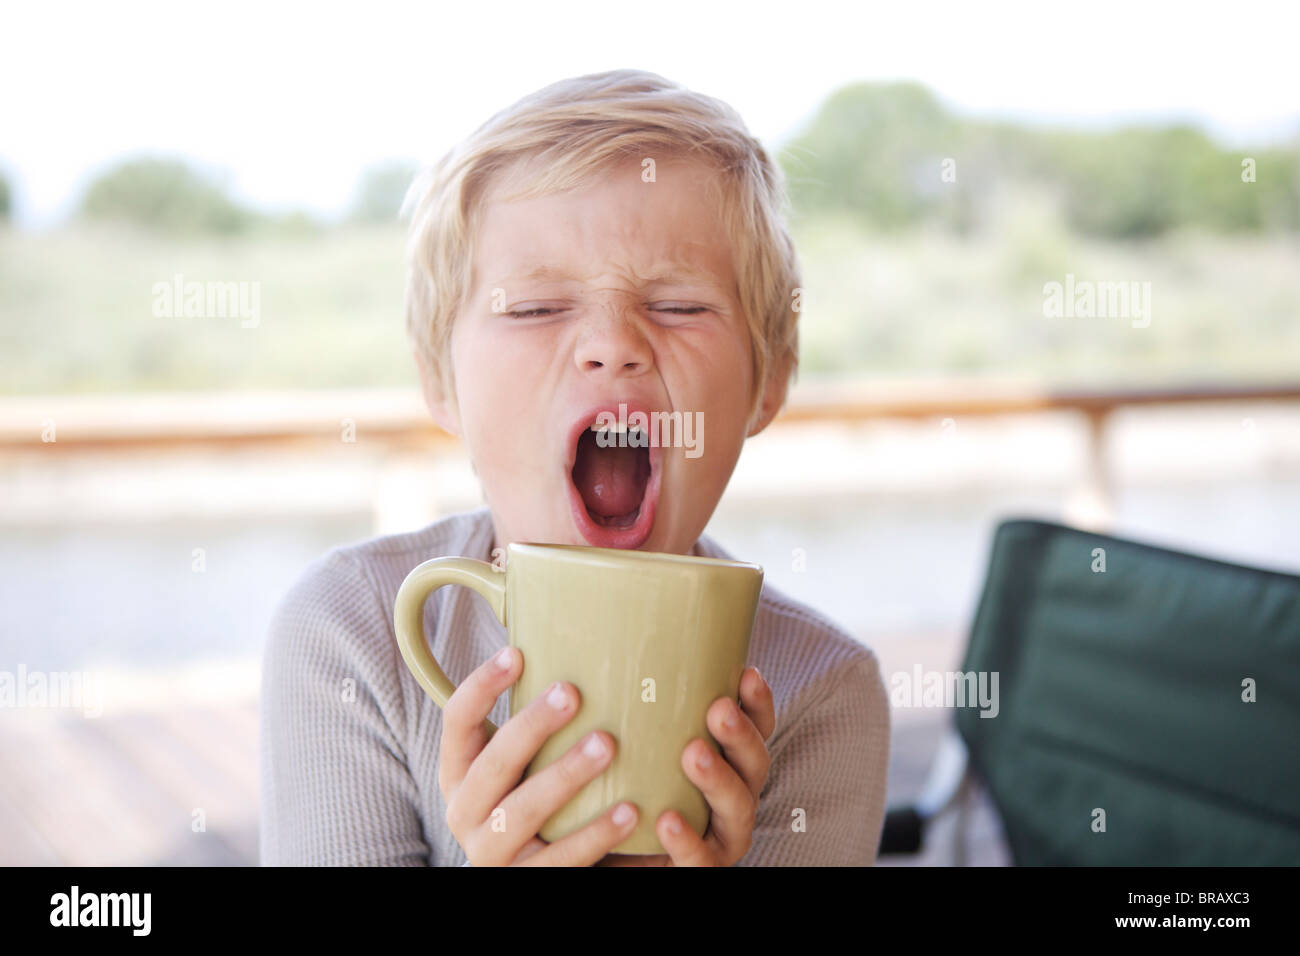 Young boy drinking from a coffee mug - Stock Image